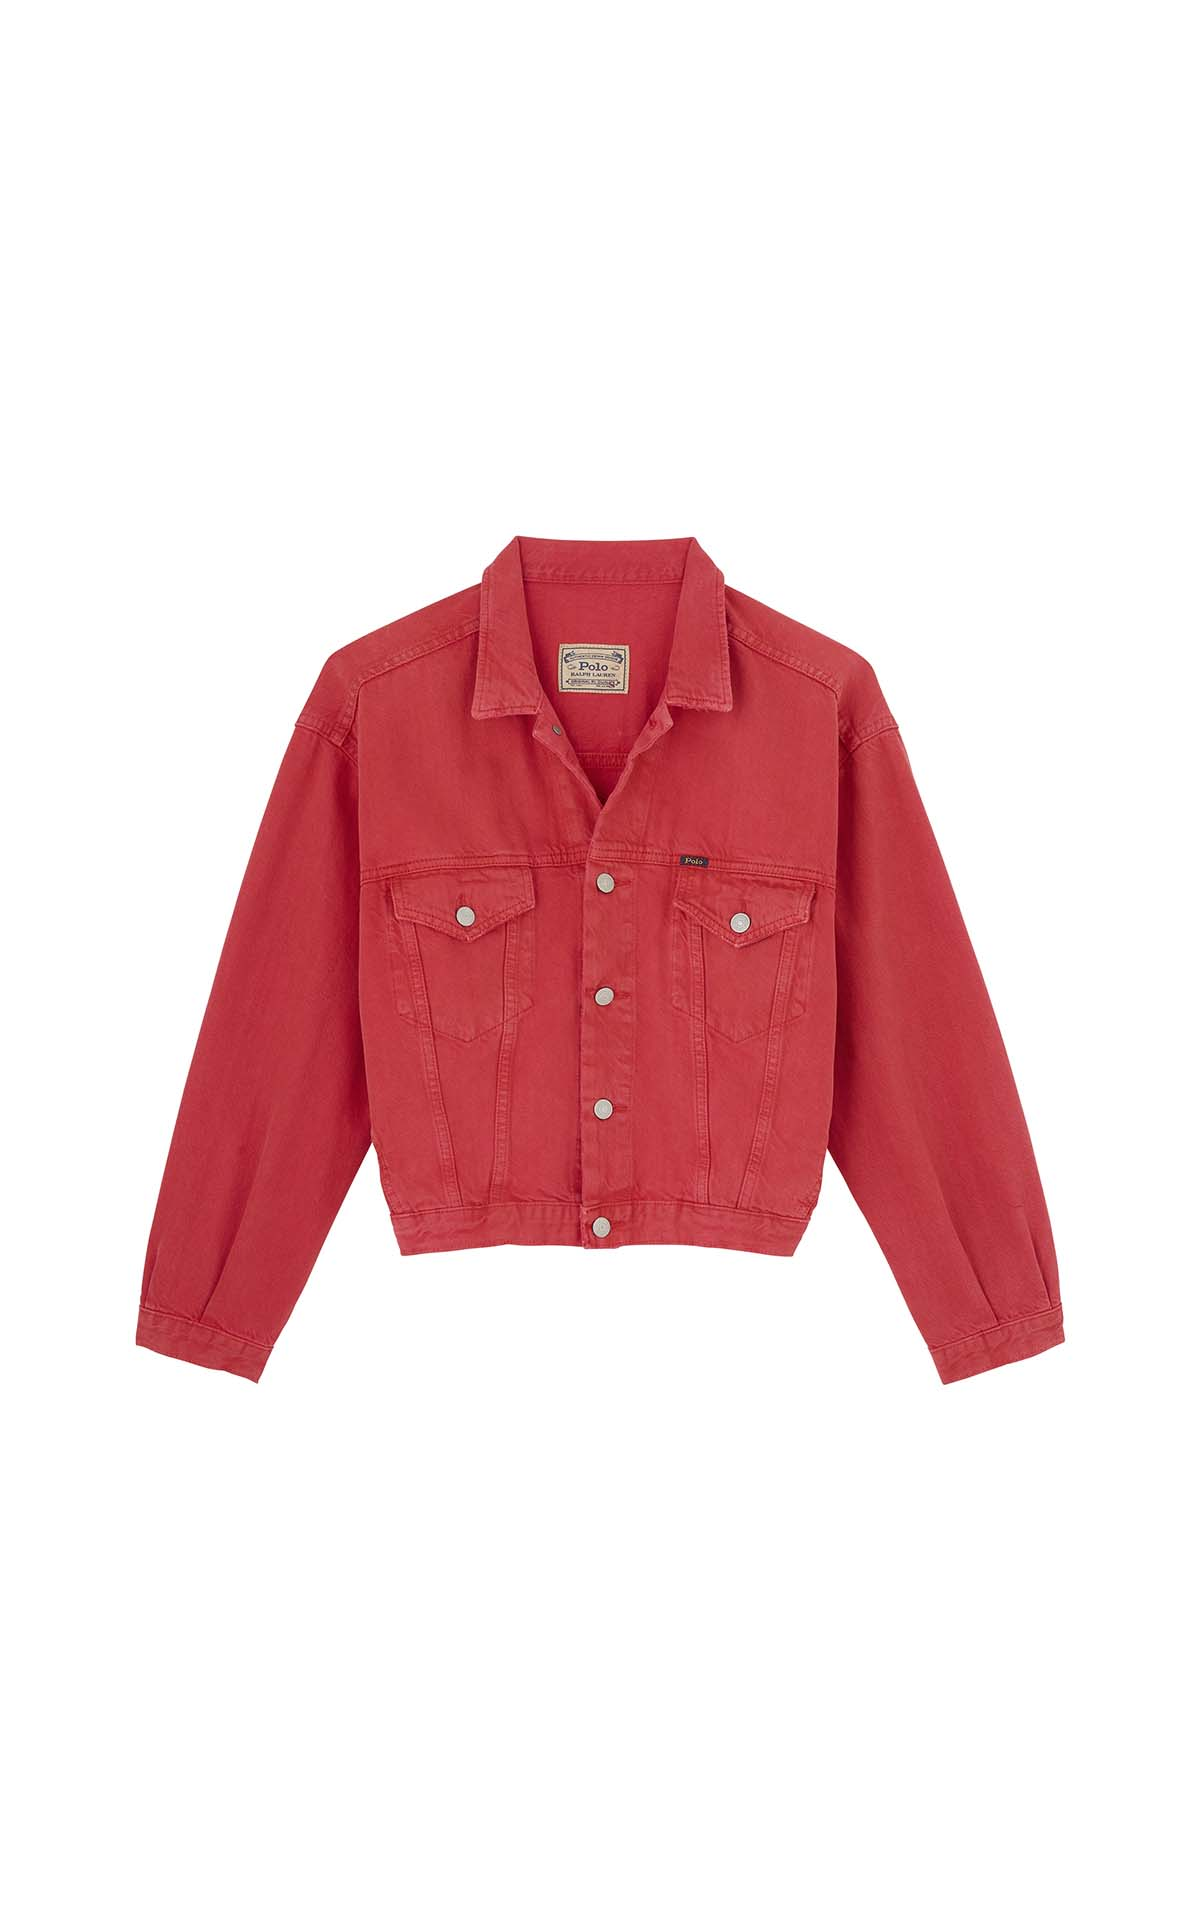 Polo Ralph Lauren Relaxed trucker jacket at The Bicester Village Shopping Collection